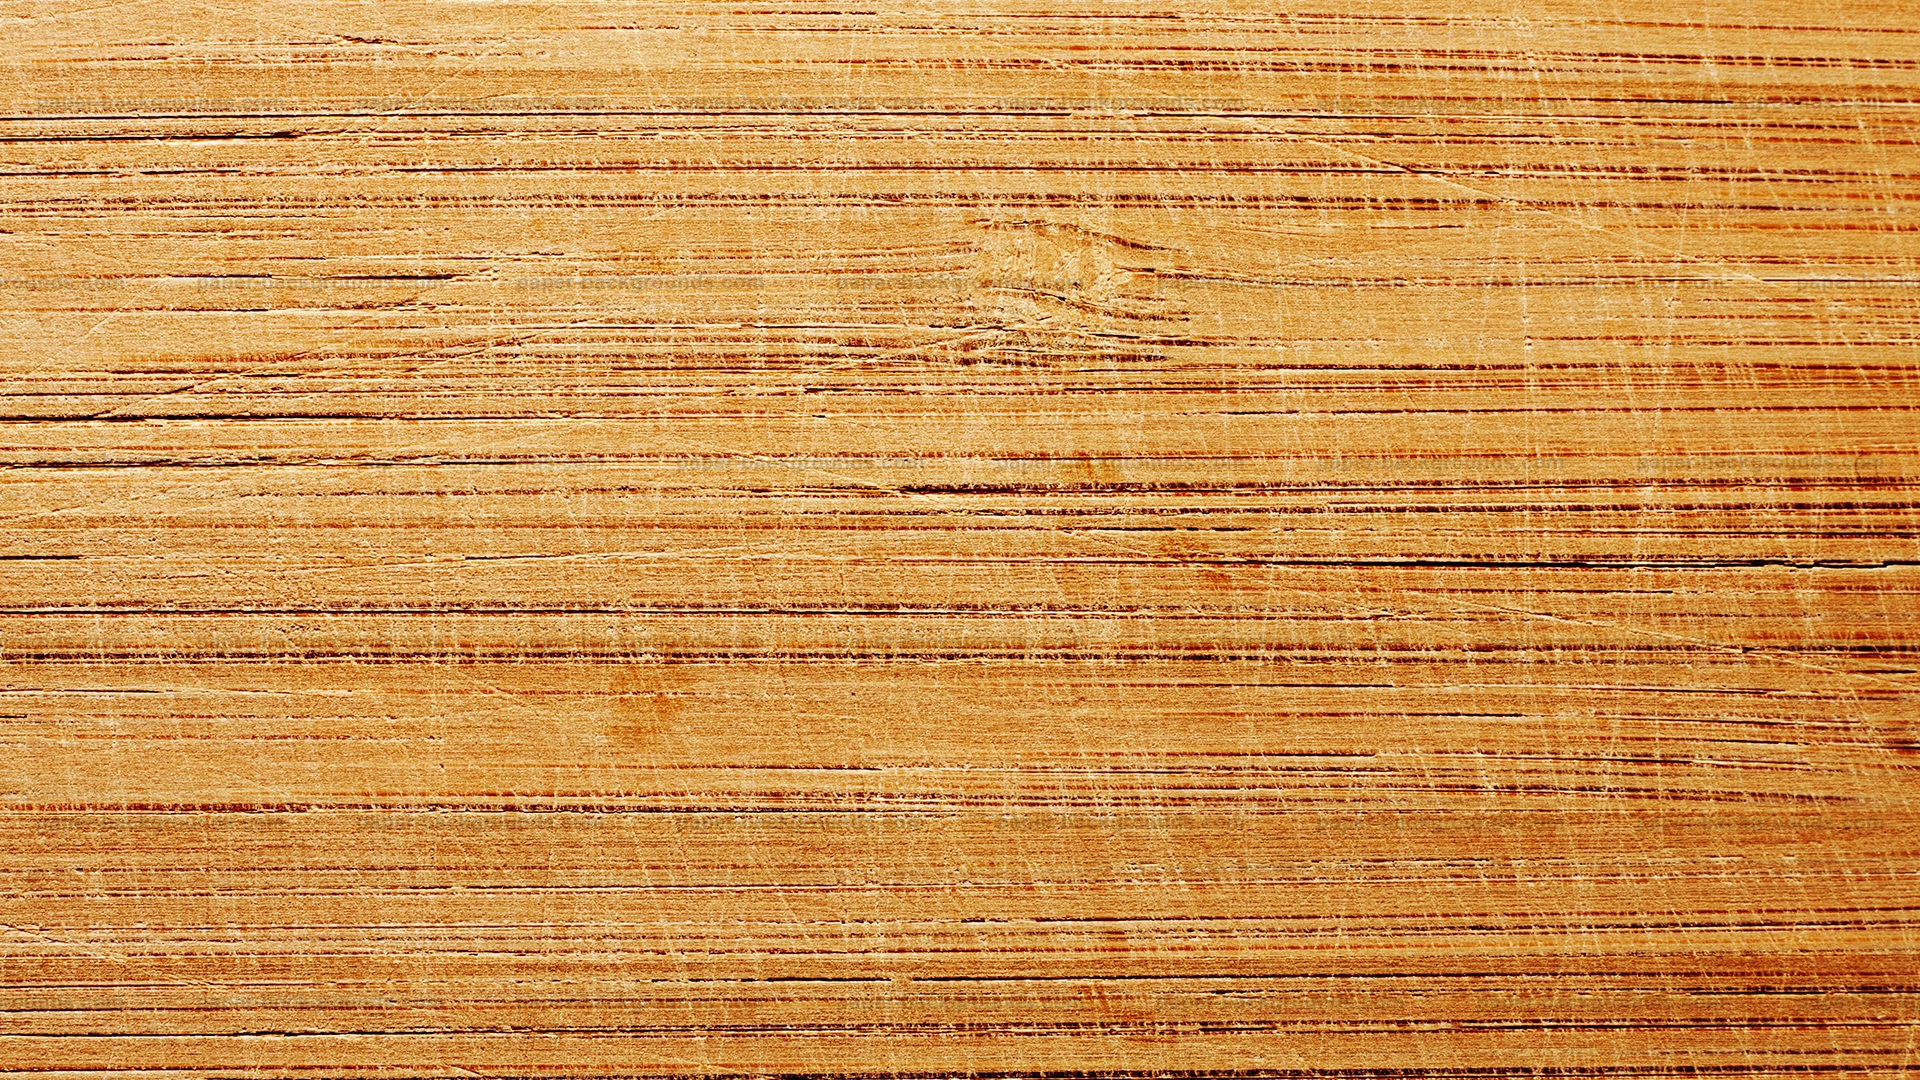 Pics photos wood texture background - Brown Wood Texture Background Hd 1920 X 1080p